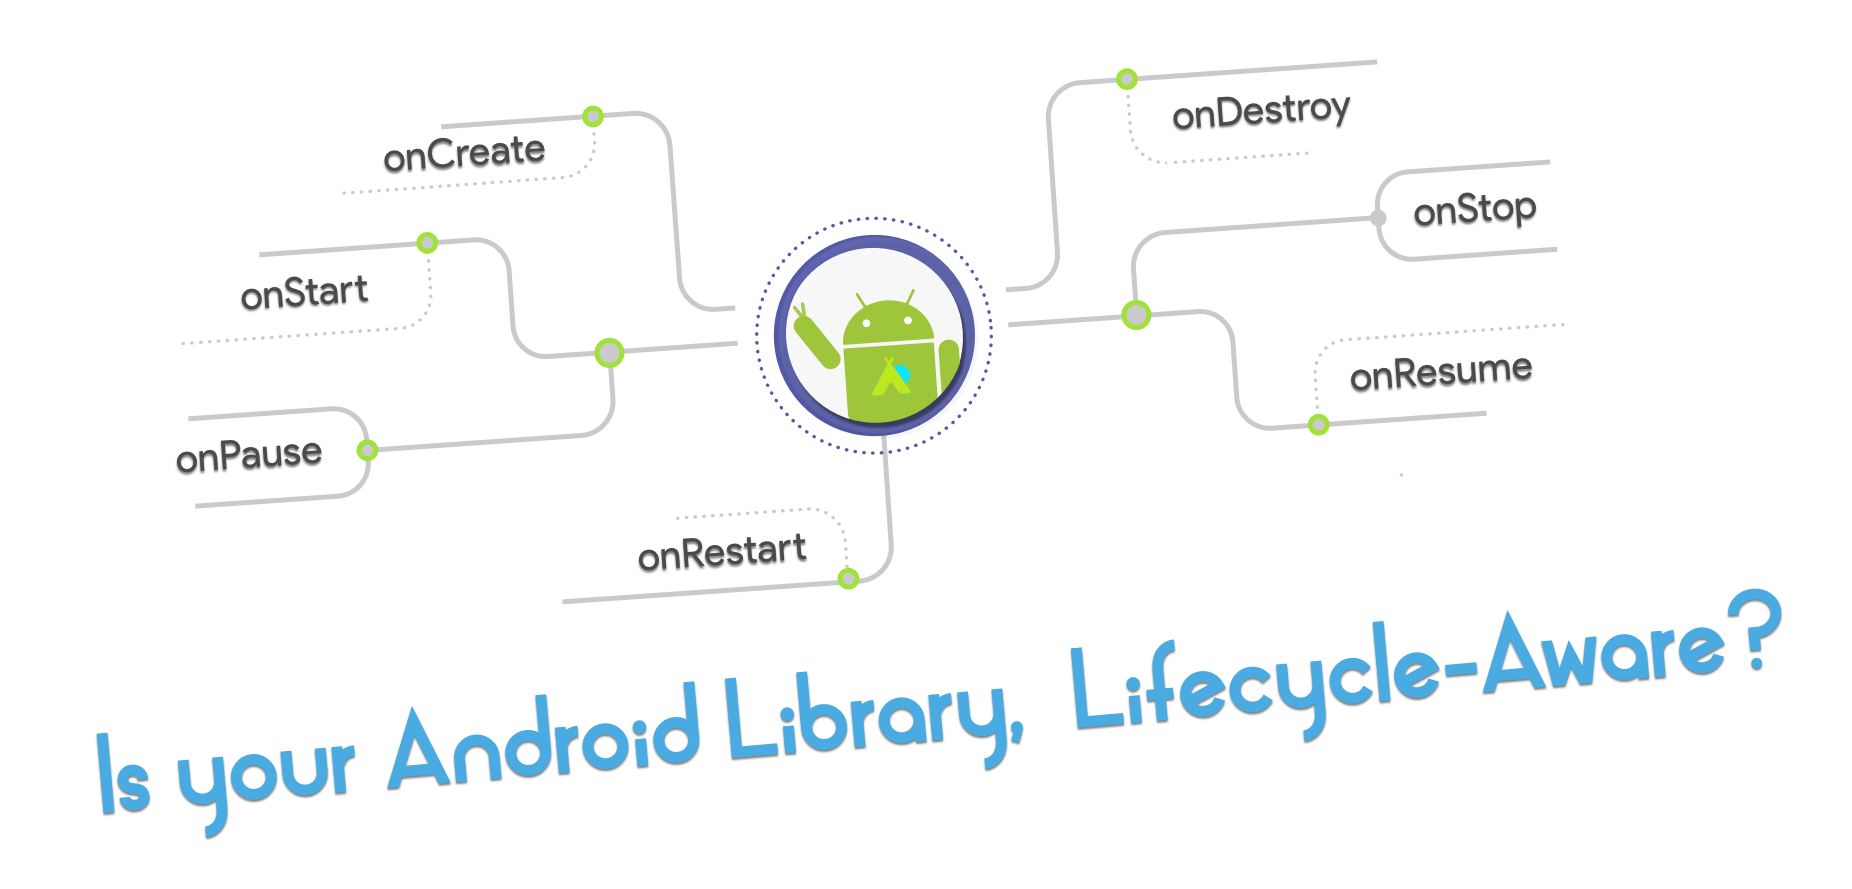 Is your Android Library, Lifecycle-Aware? - AndroidPub